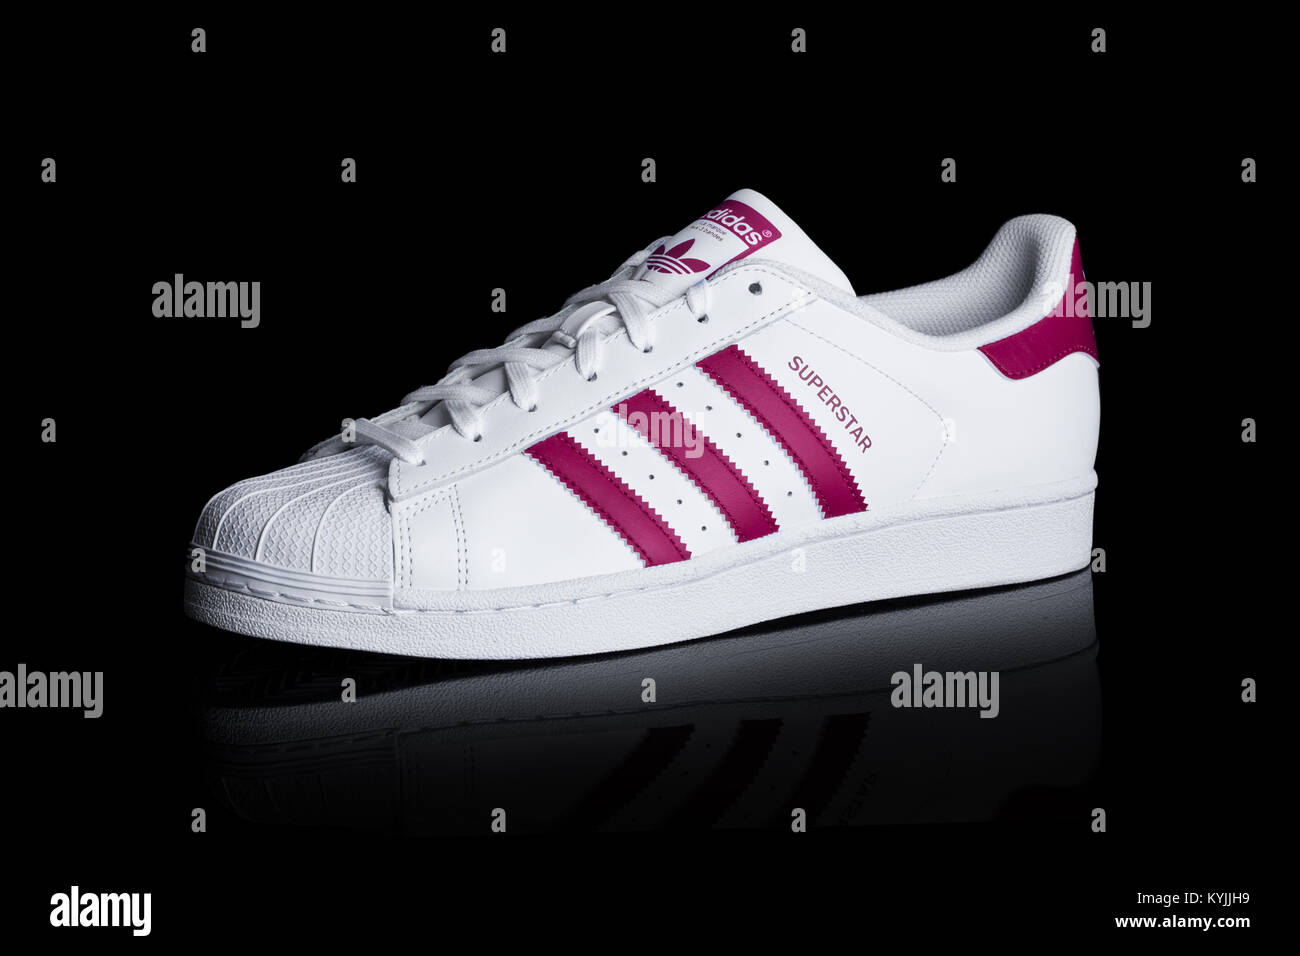 2018Adidas Superstar Janvier LondresRoyaume Uni Originals 12 lK1Jc5uTF3